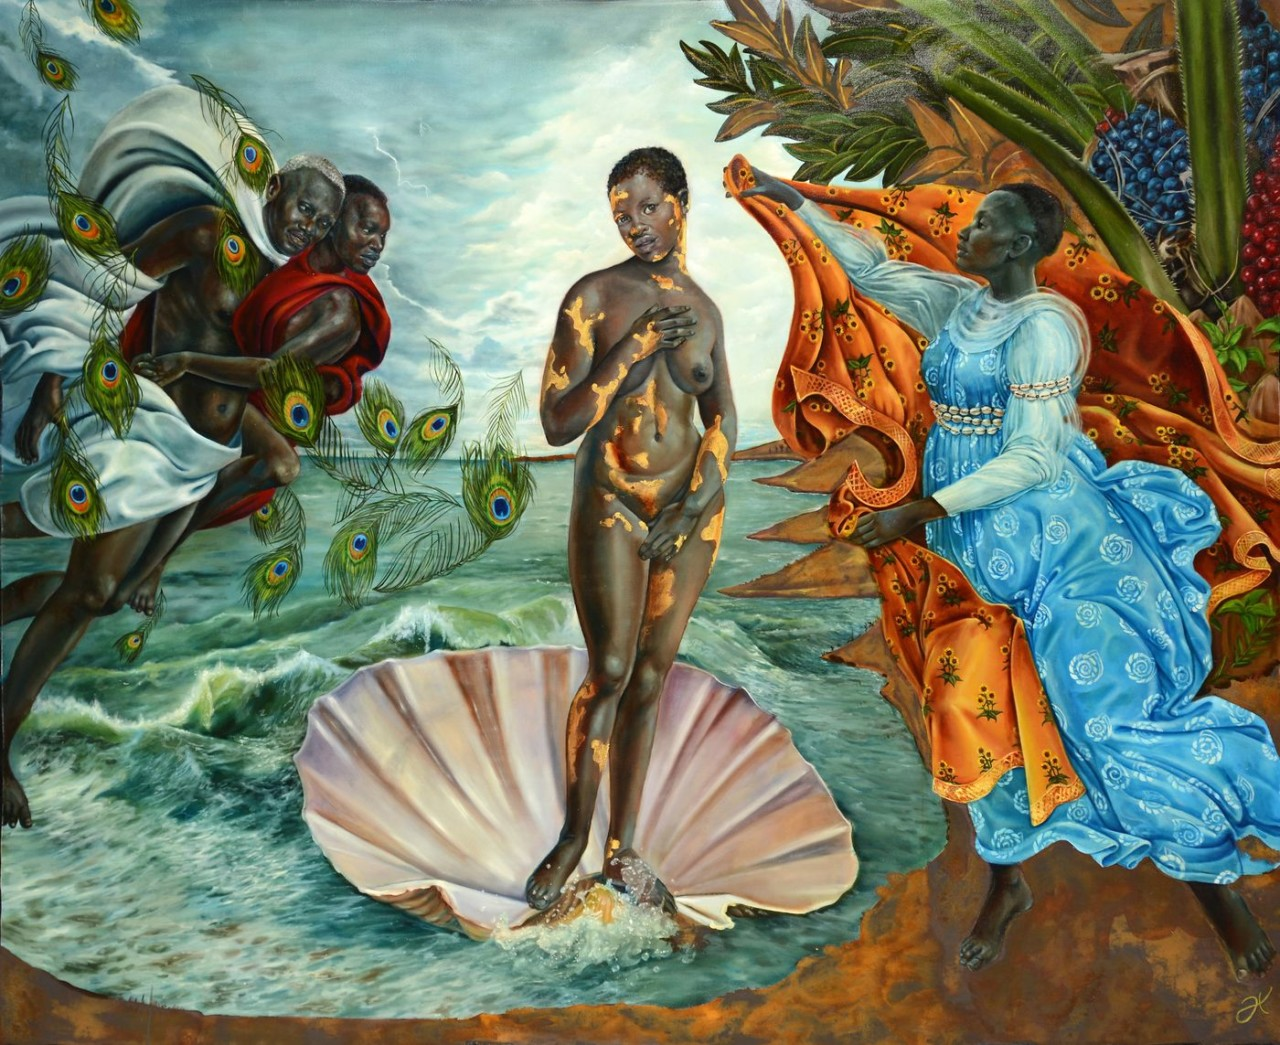 Birth of Oshun (da série B.I.T.C.H - Black Imaginary To Counter Hegemony)